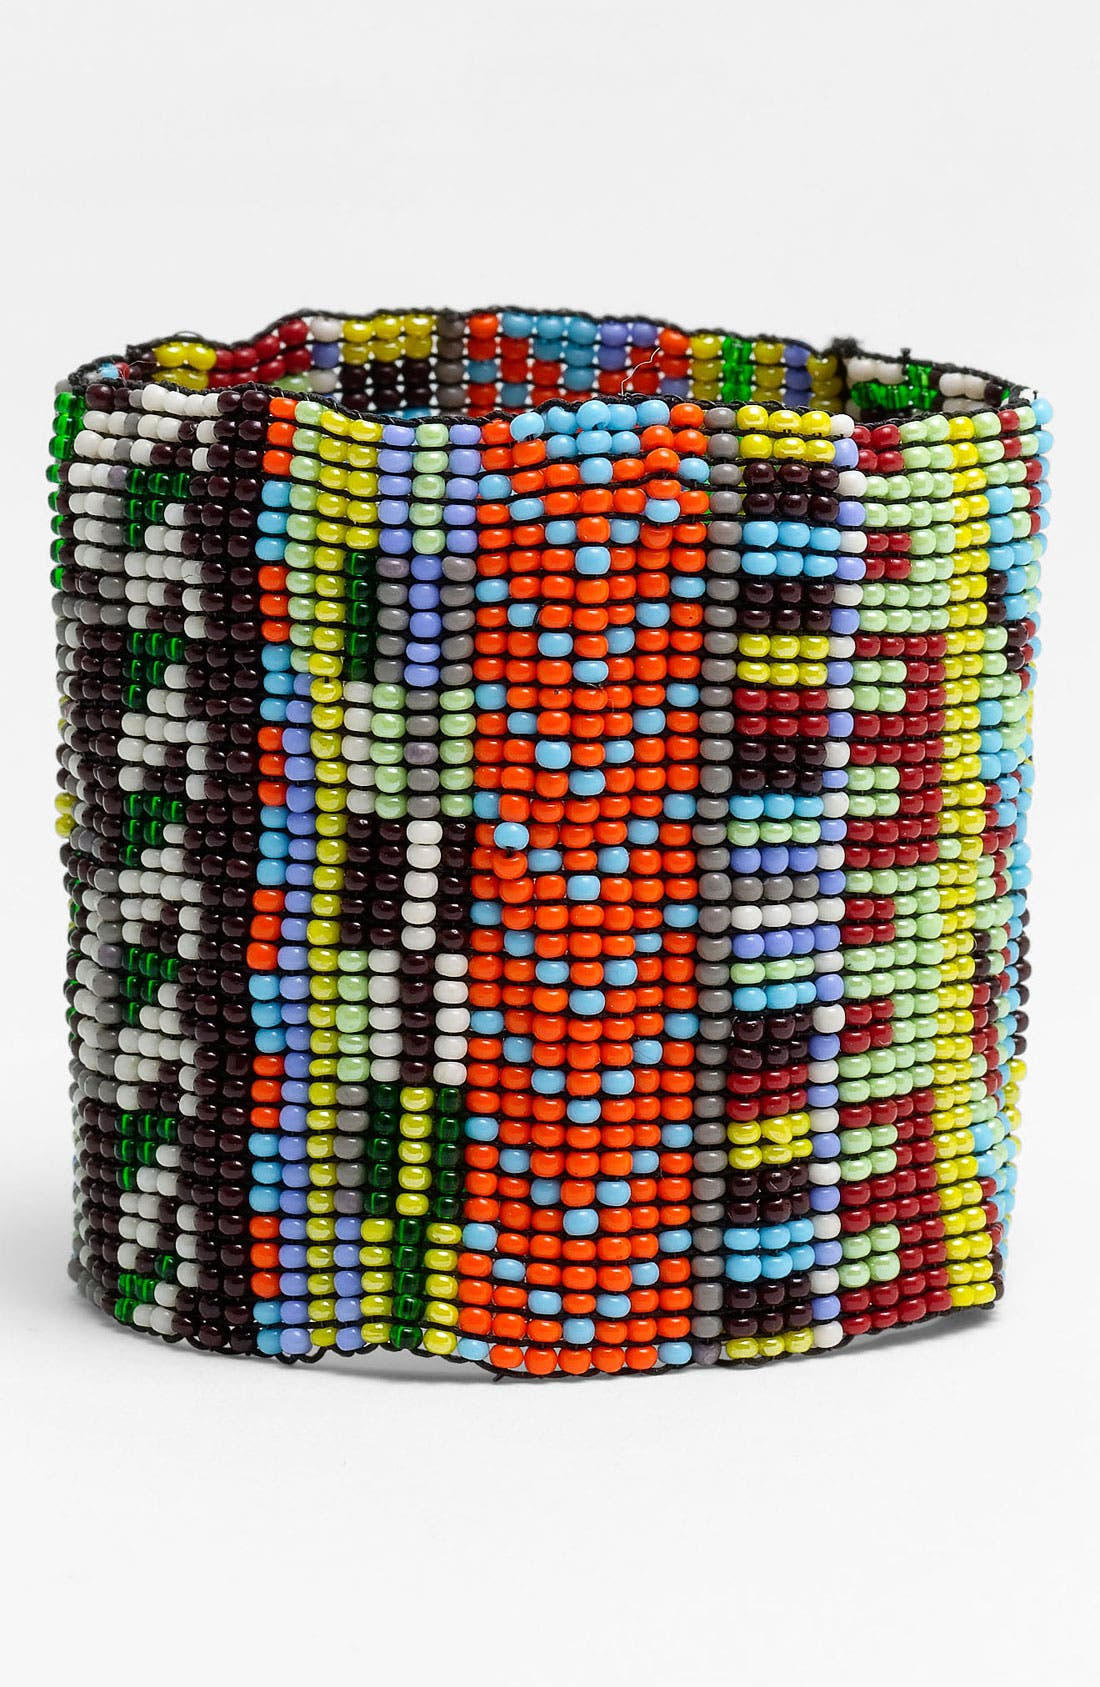 Alternate Image 1 Selected - Chan Luu Glass Bead Bracelet